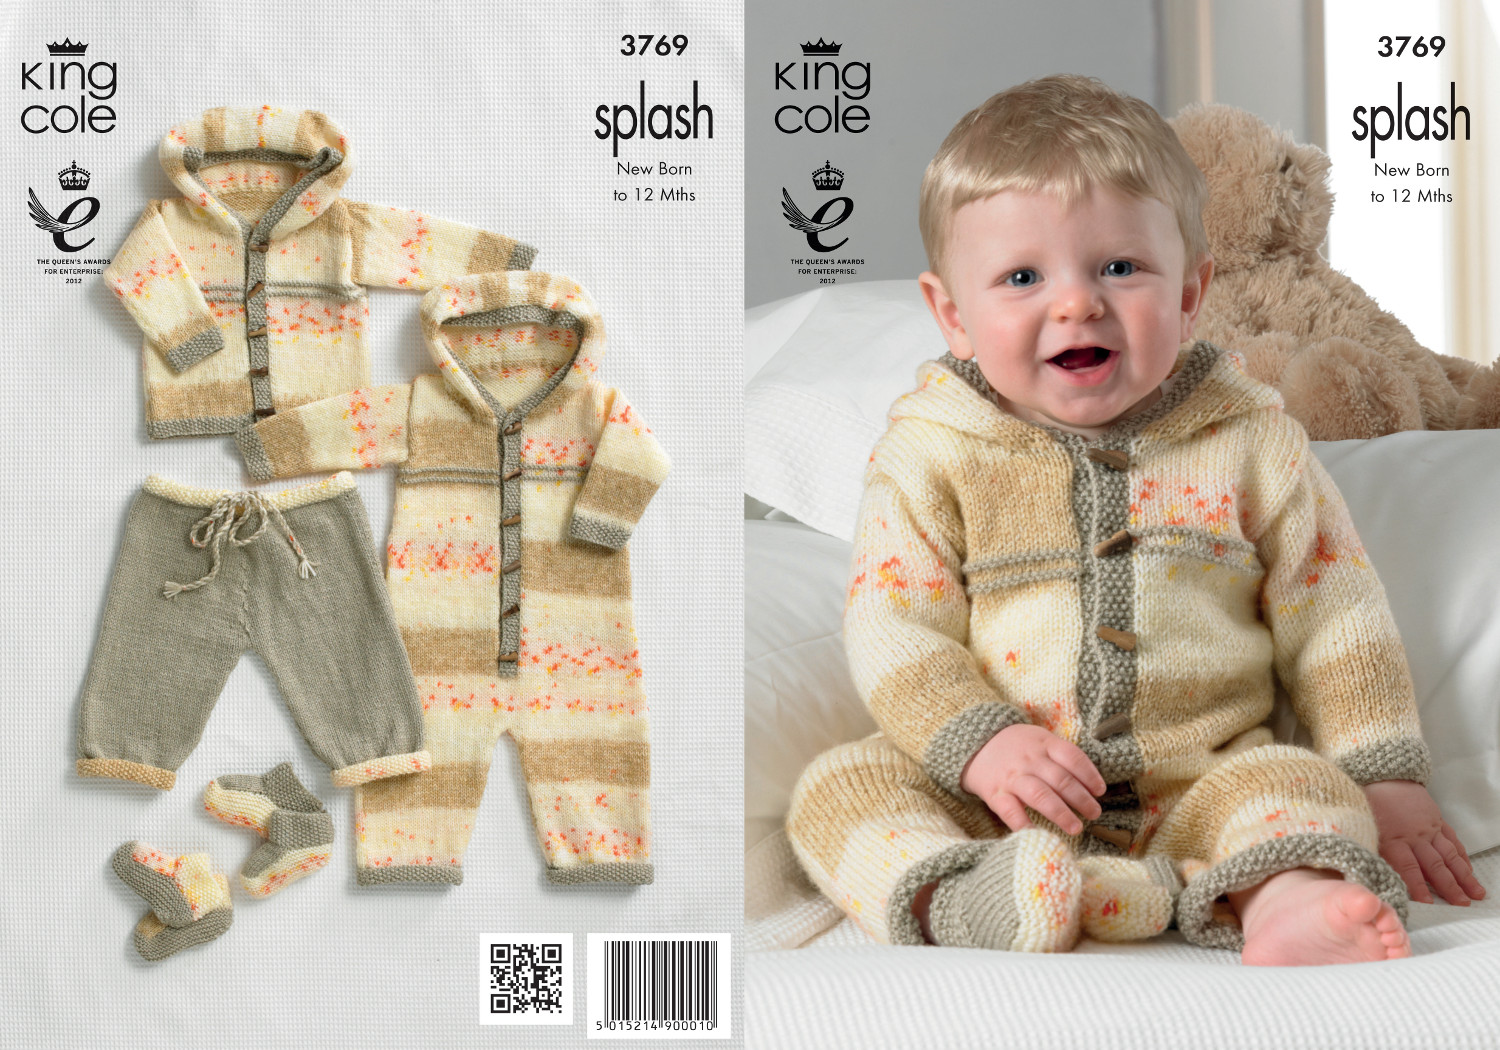 Knitting Pattern Baby All In One : Baby Double Knitting Pattern Splash DK King Cole Coat ...